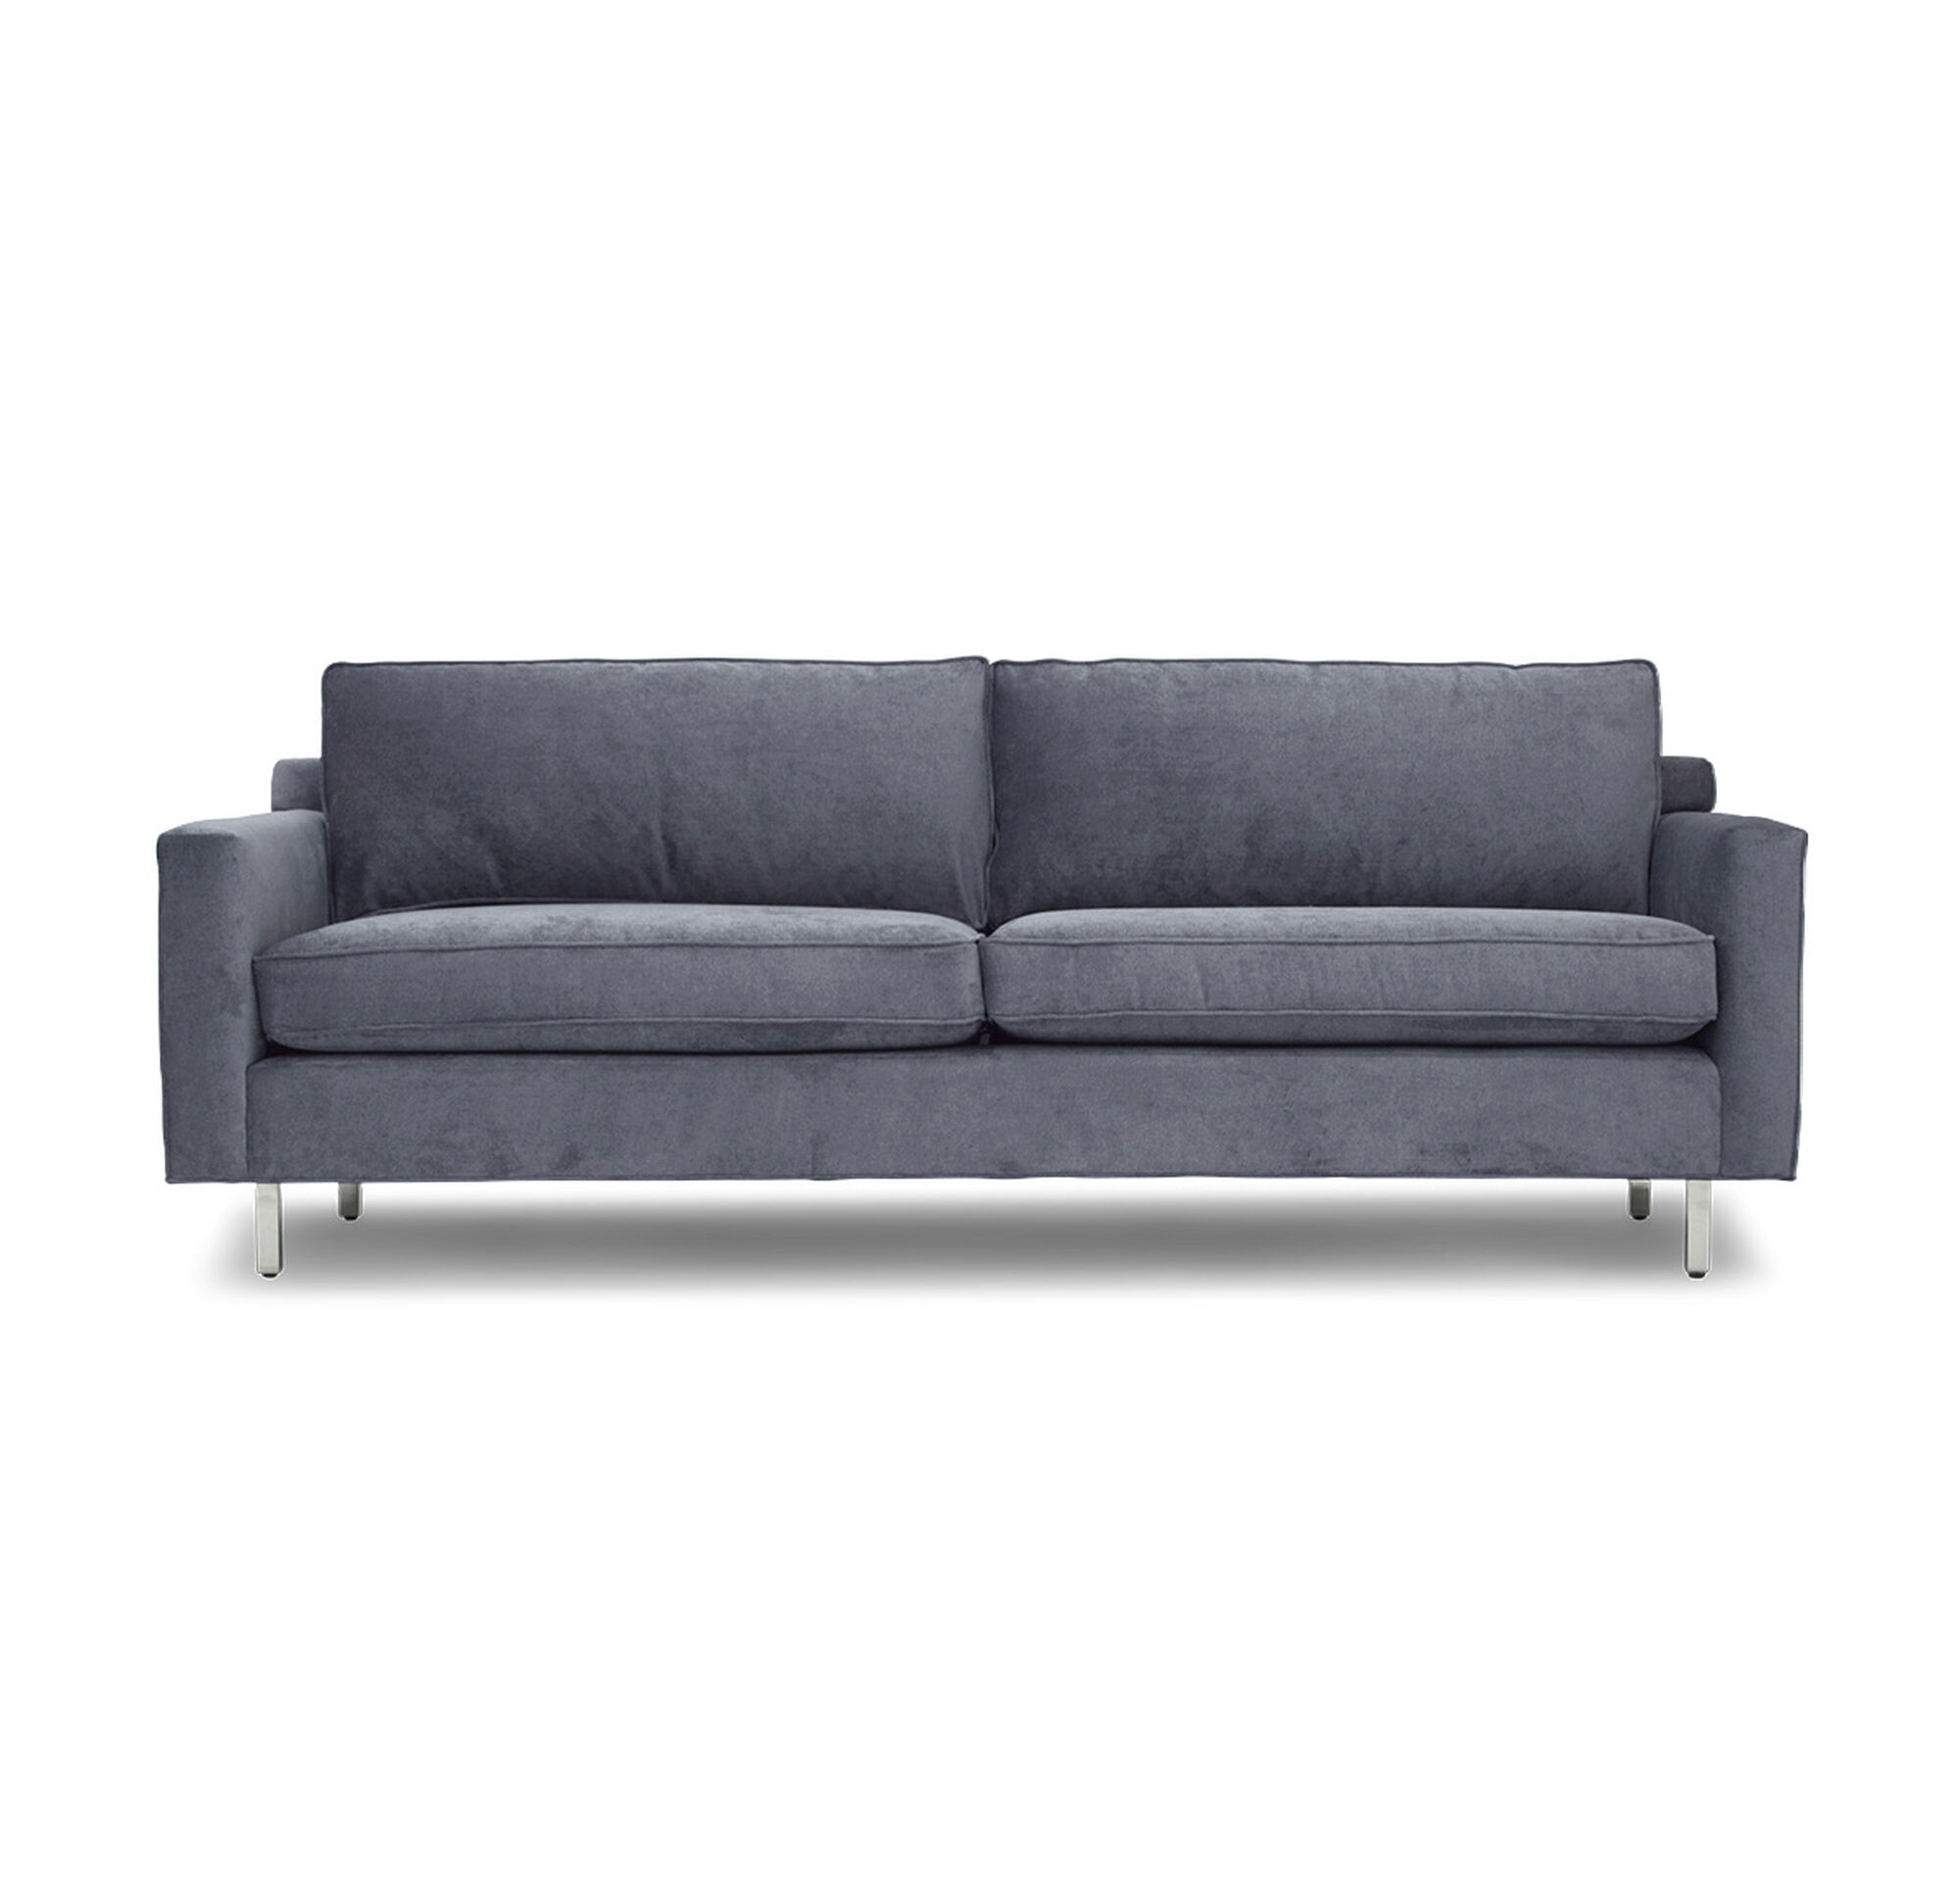 Outstanding Hunter Studio Sofa Pabps2019 Chair Design Images Pabps2019Com